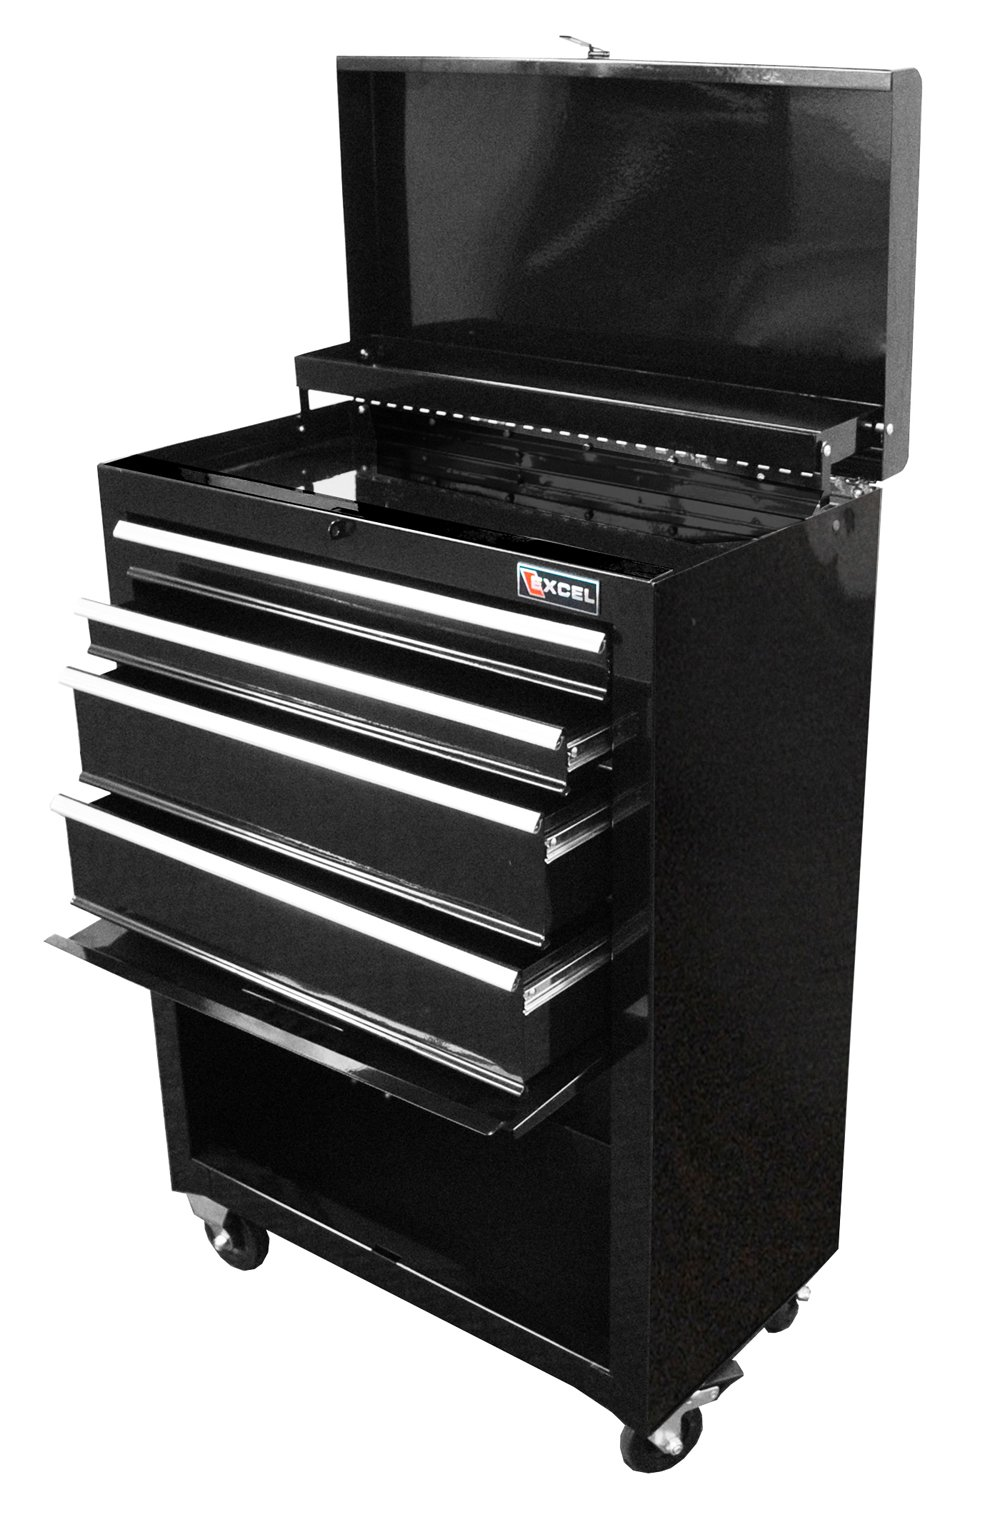 Excel TB2201X-Black 22-Inch Steel Chest Roller Cabinet Combination, Black by Excel